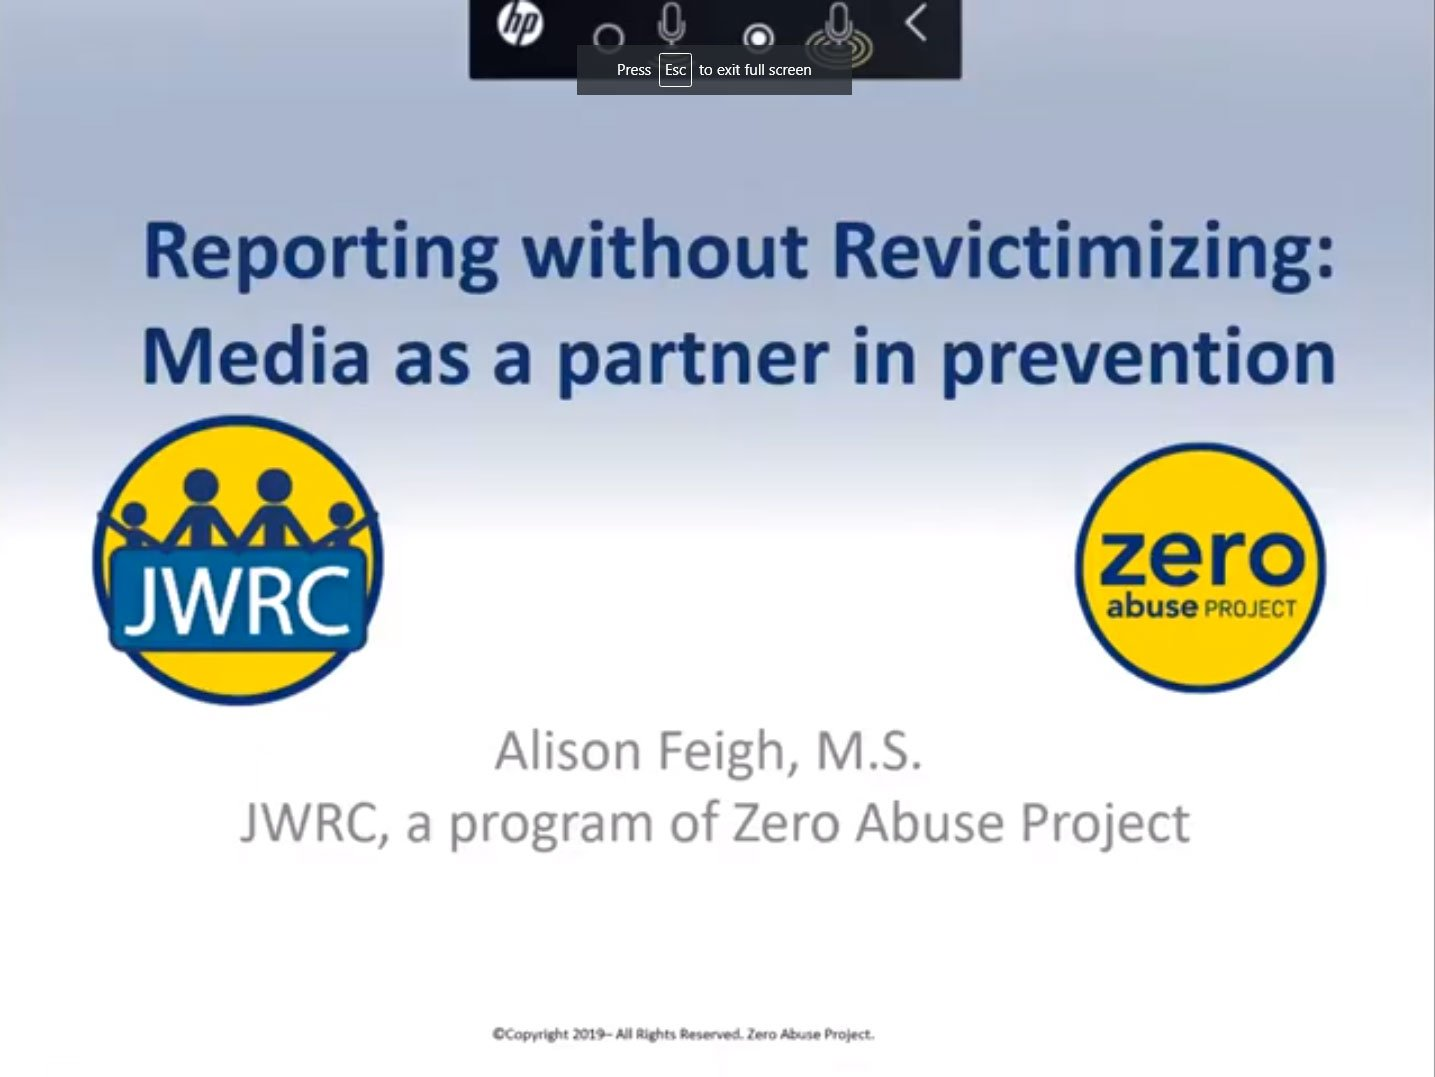 Reporting without Re-Victimizing: Working with the Media